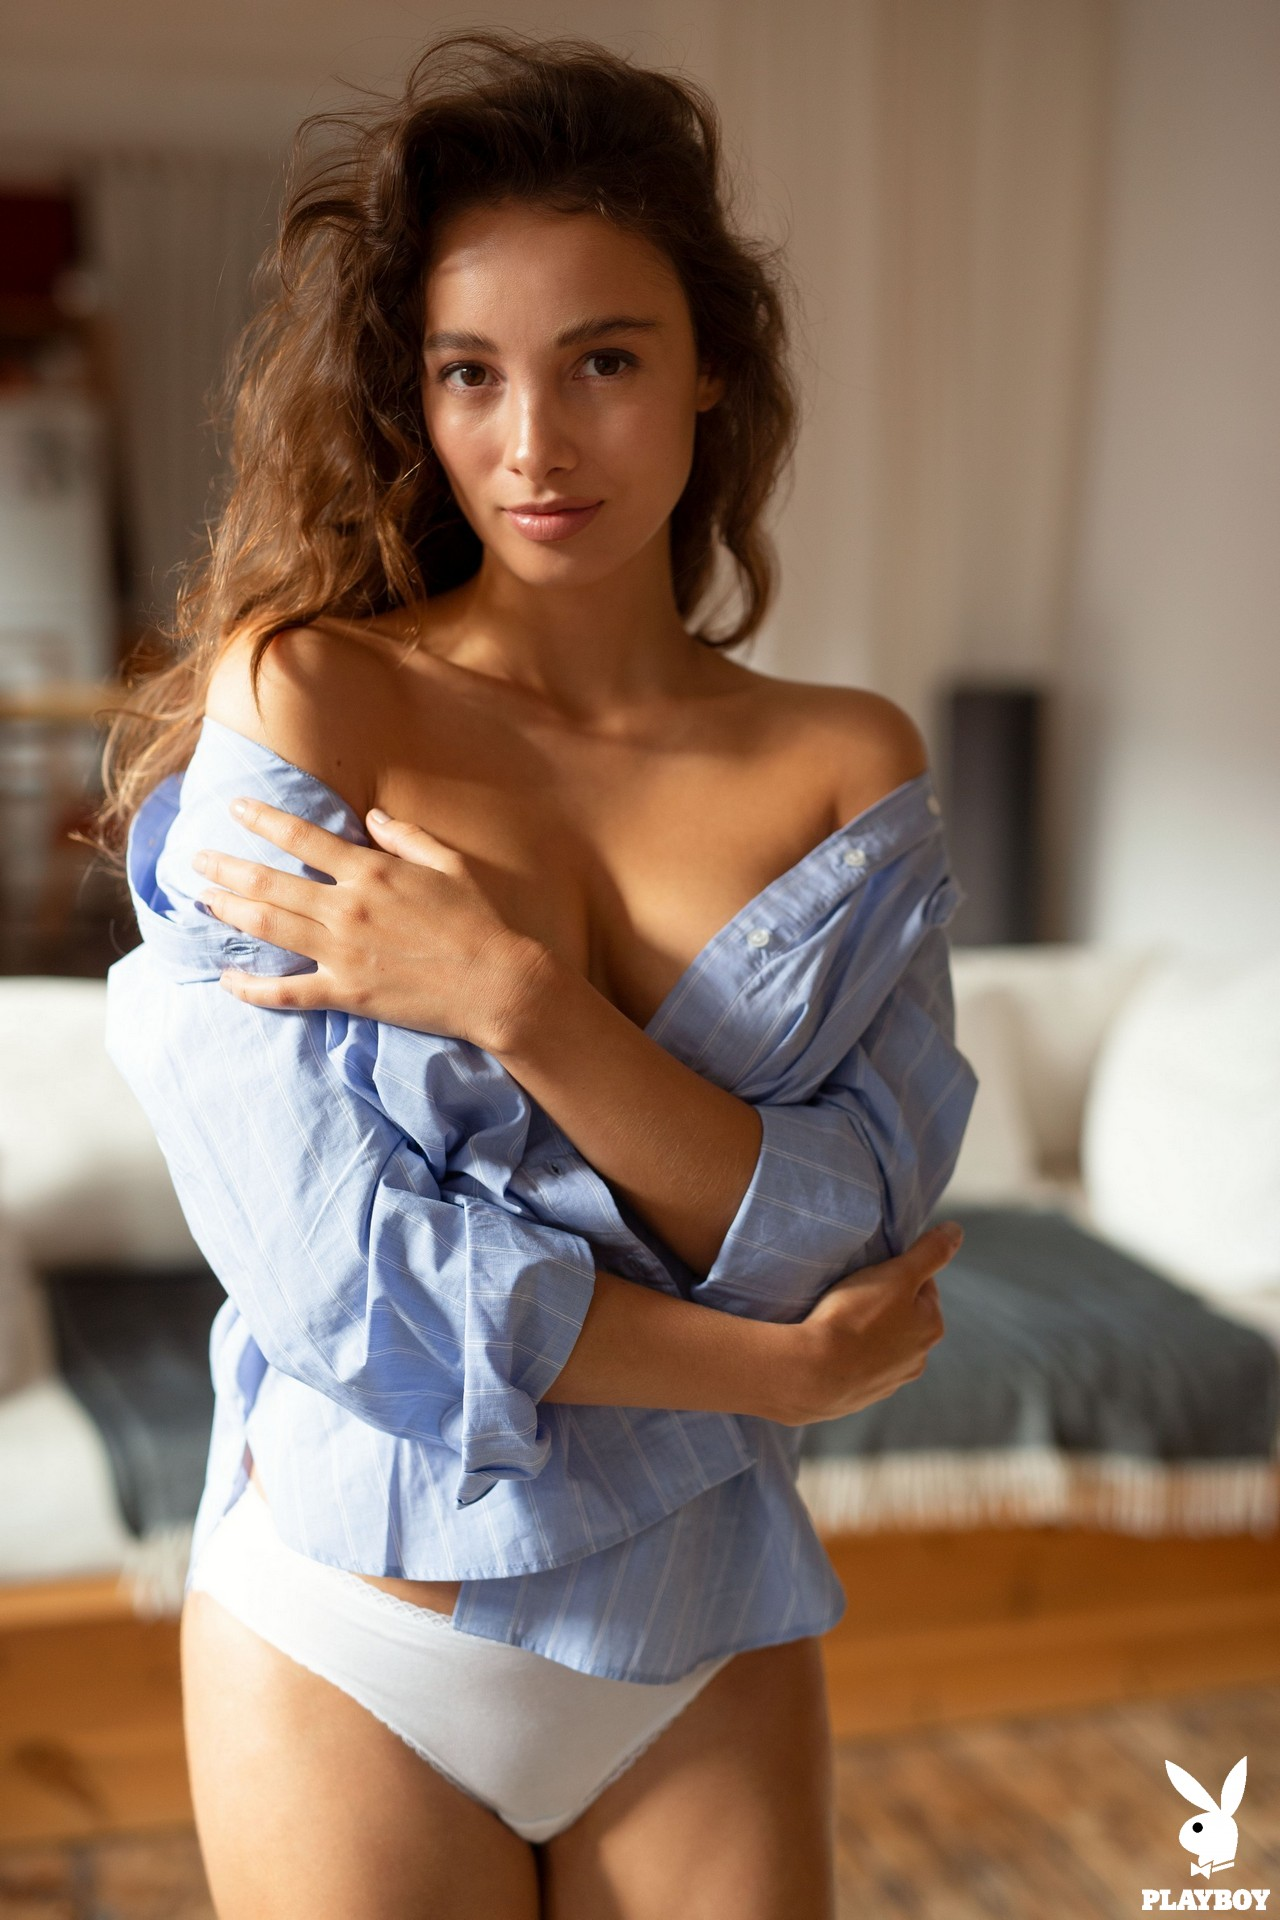 Calypso Muse in Sweet Comforts - Playboy Plus 1